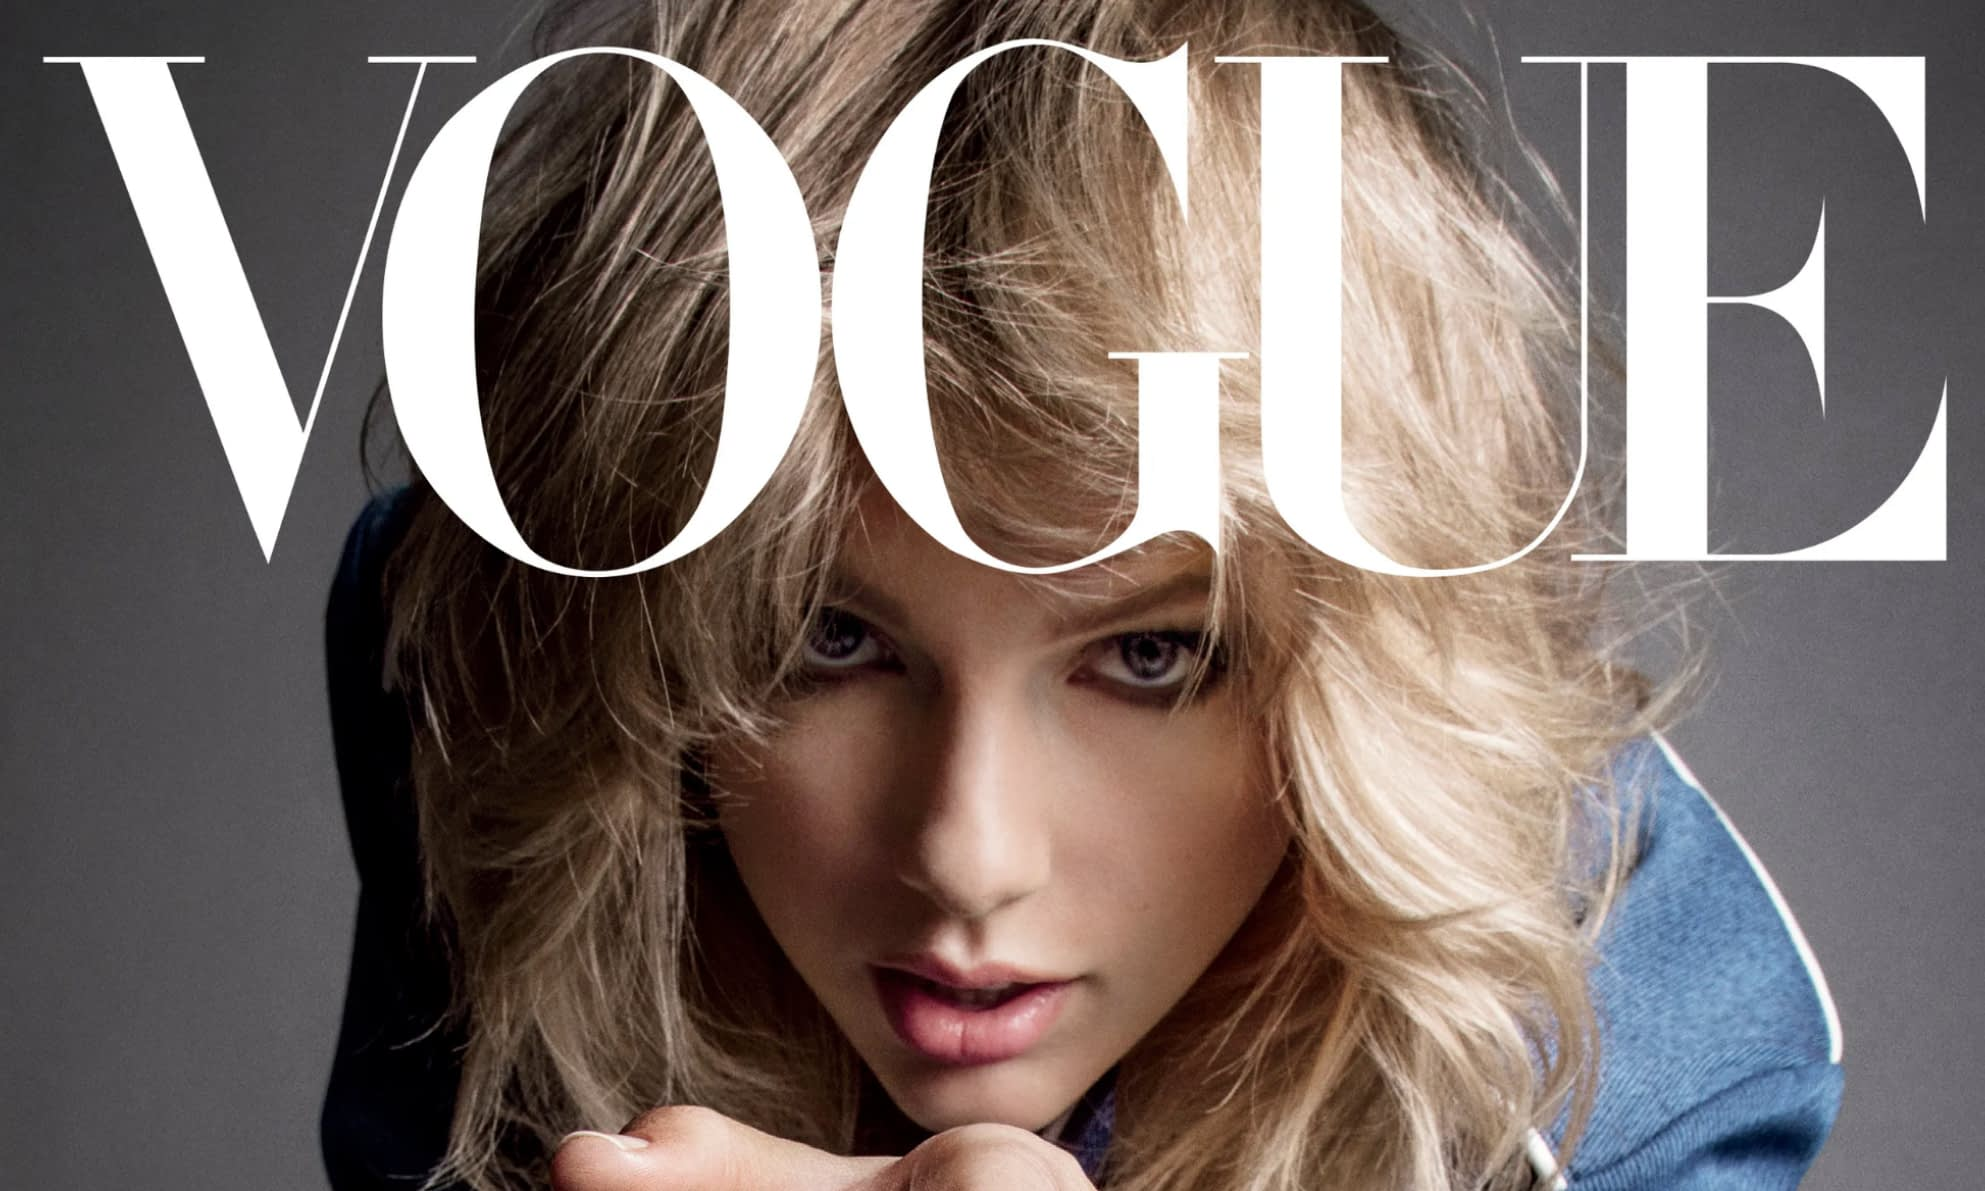 Vogue post featured image post